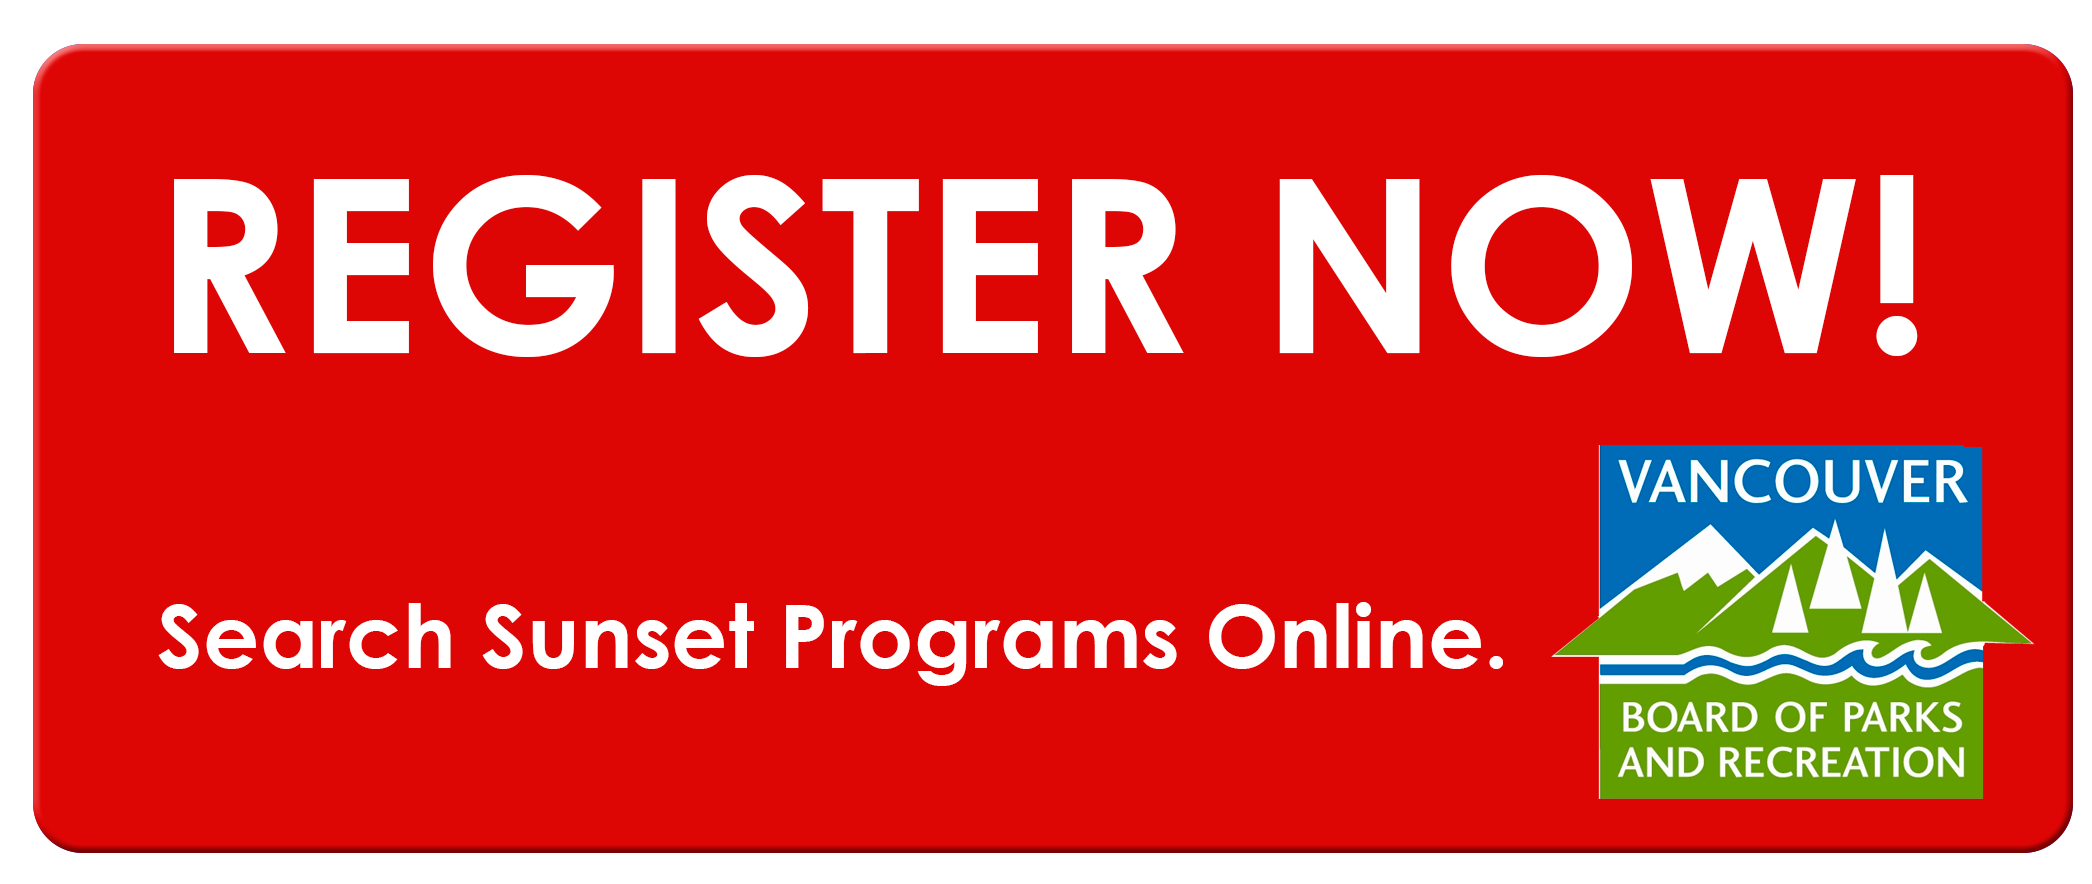 View Sunset Community Programs Online!